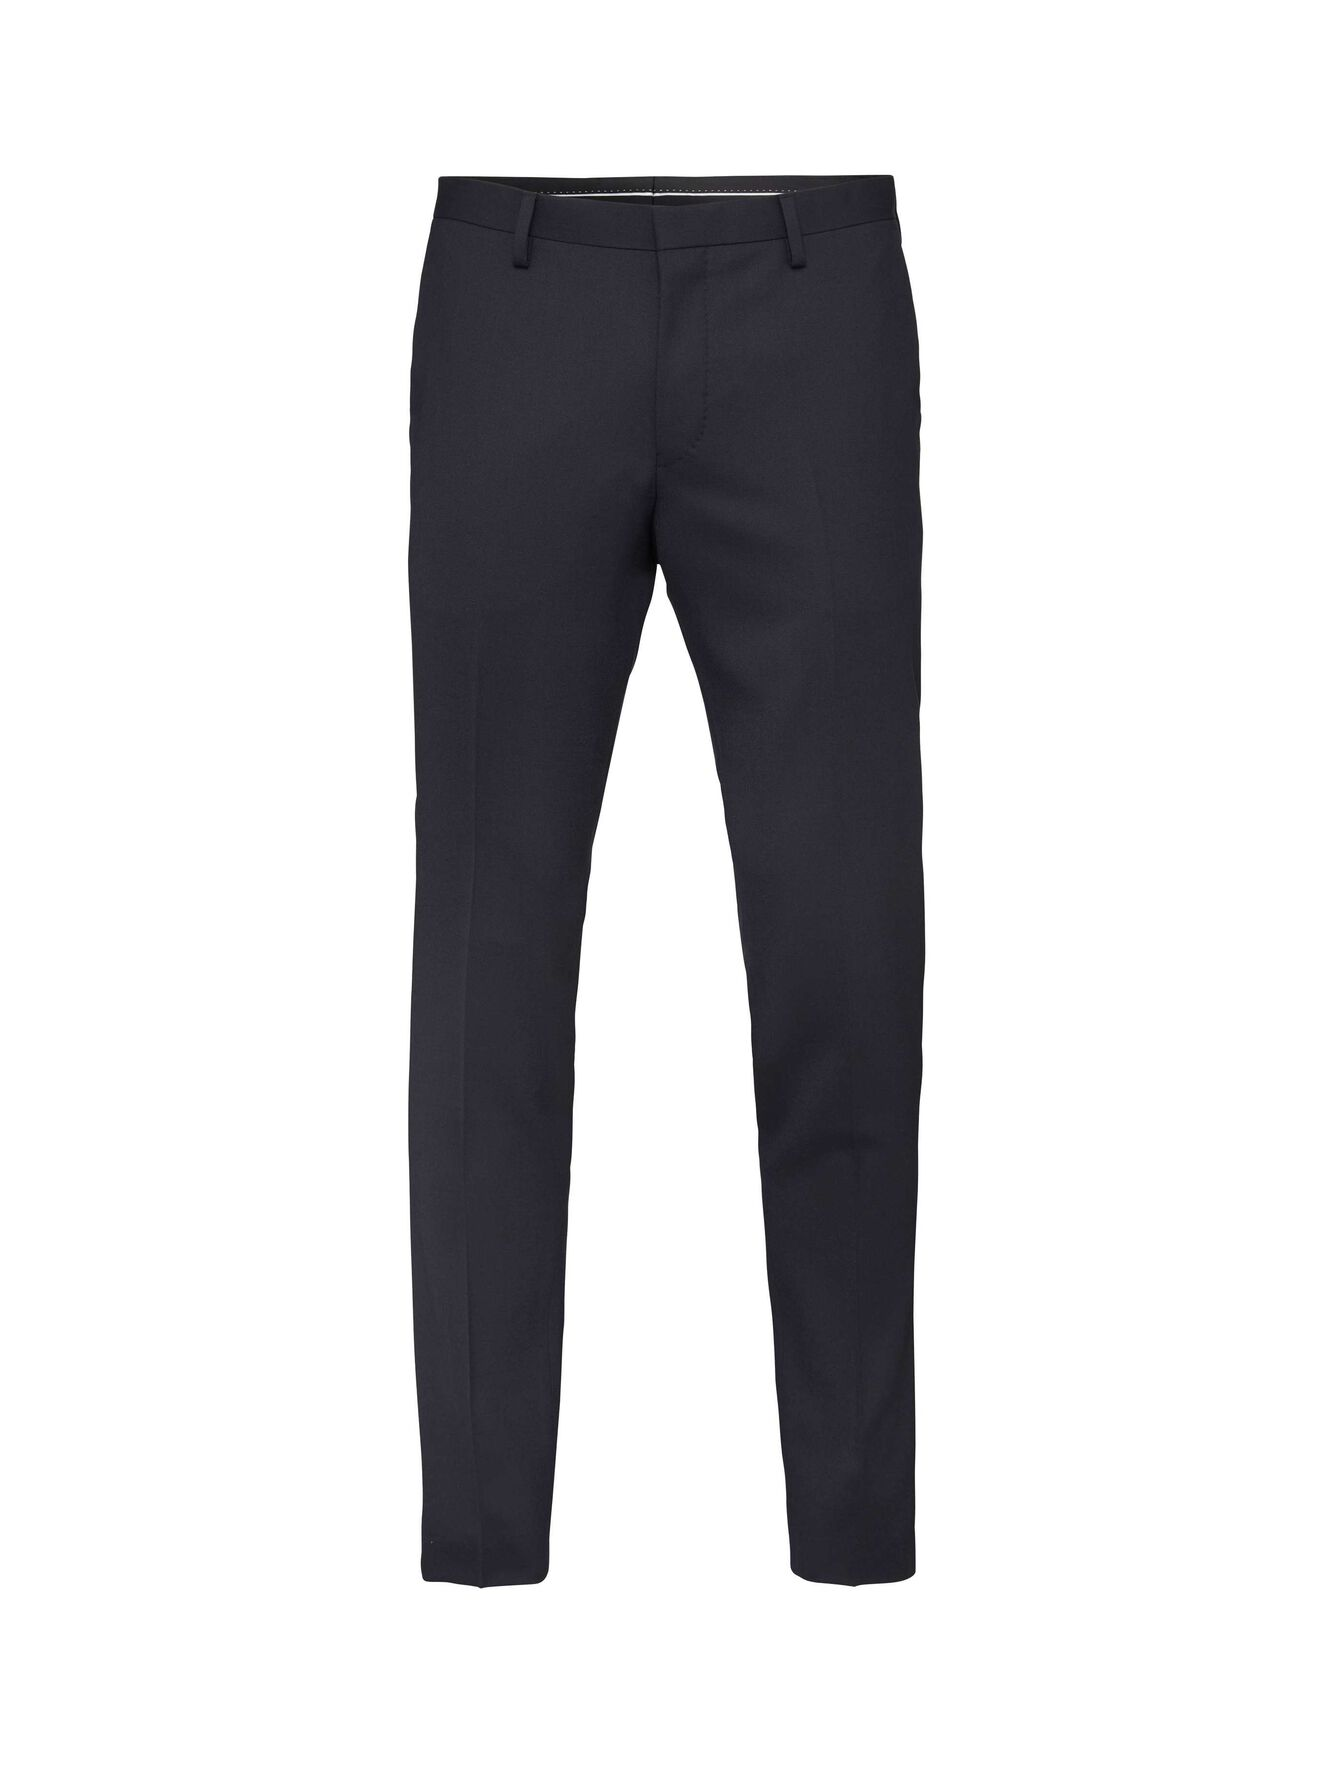 Matte trousers in Light Ink from Tiger of Sweden